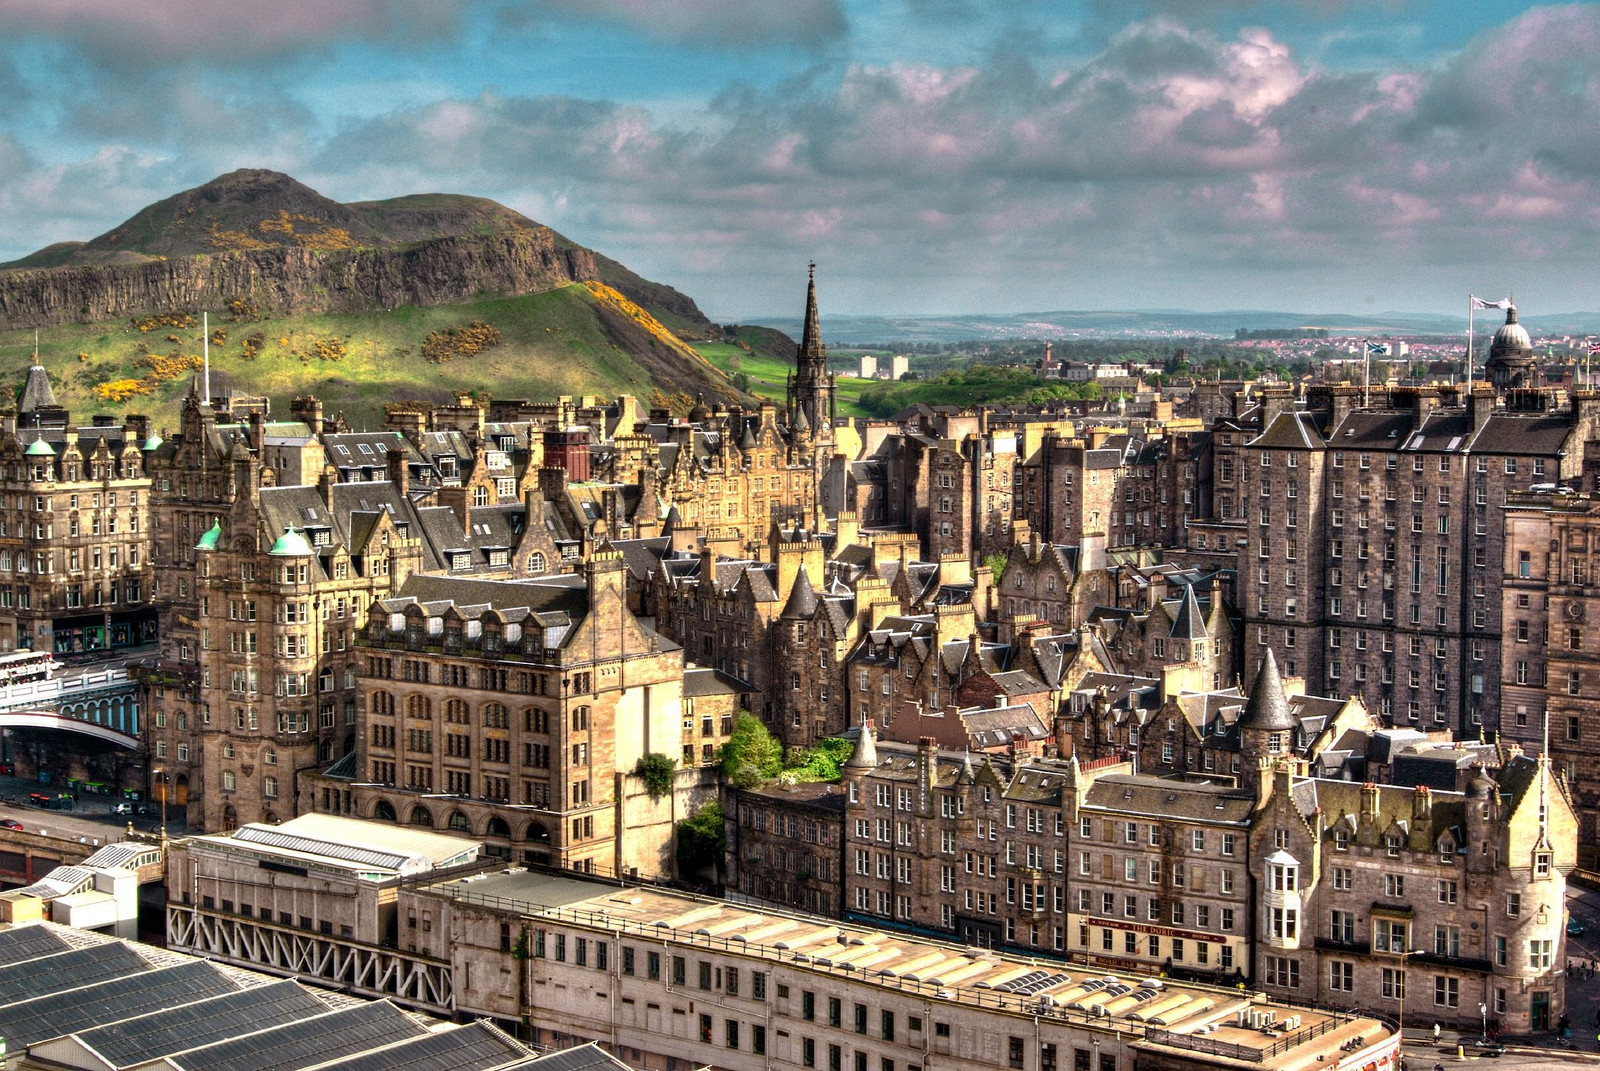 Edinburgh Scotland Hd Wallpaper 1 4x53u6